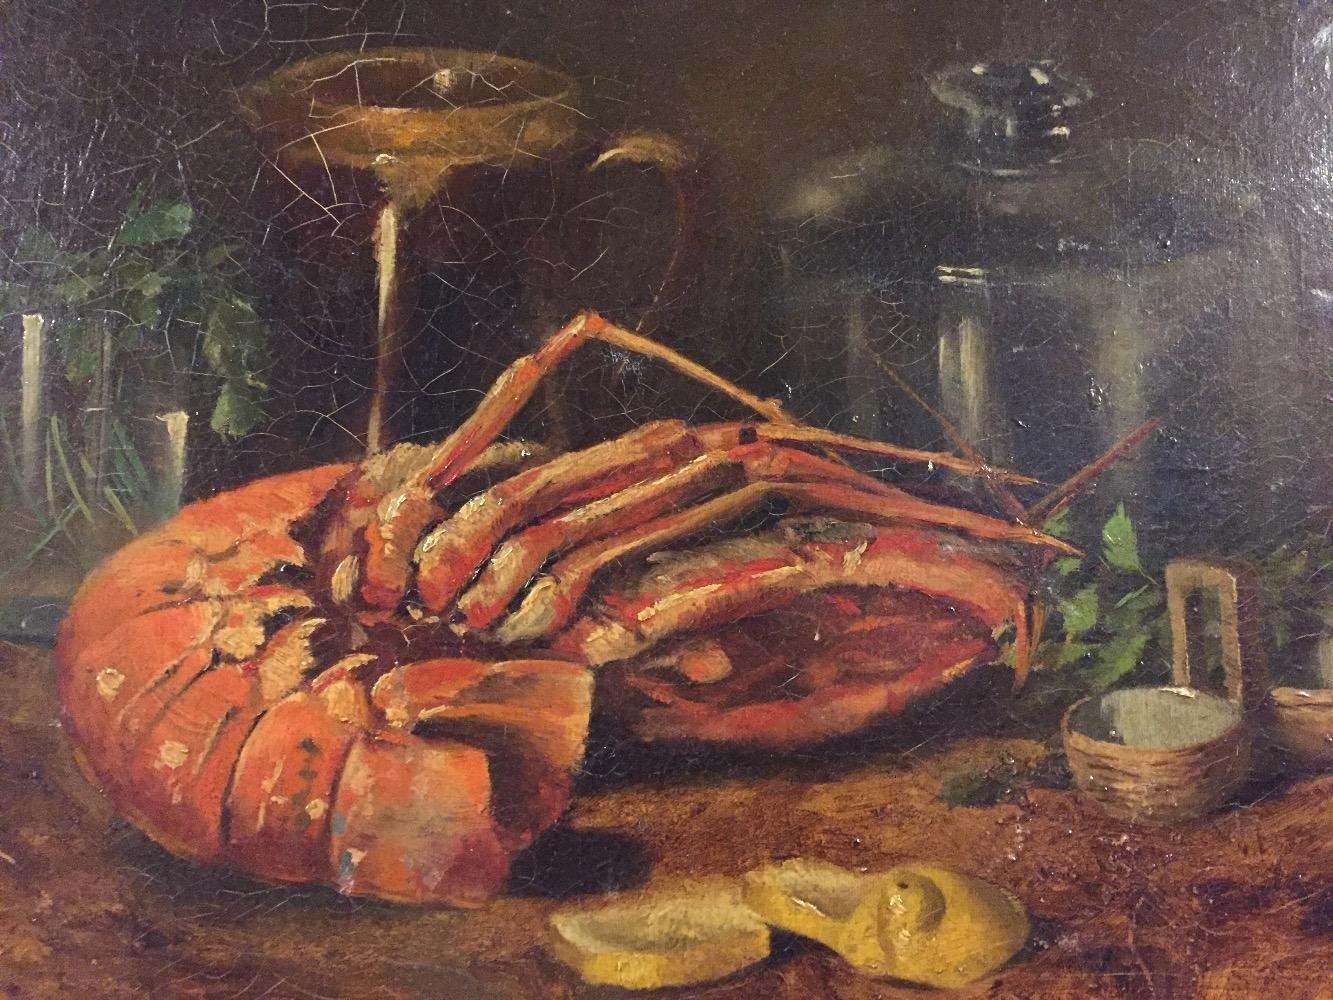 Stillife with lobster